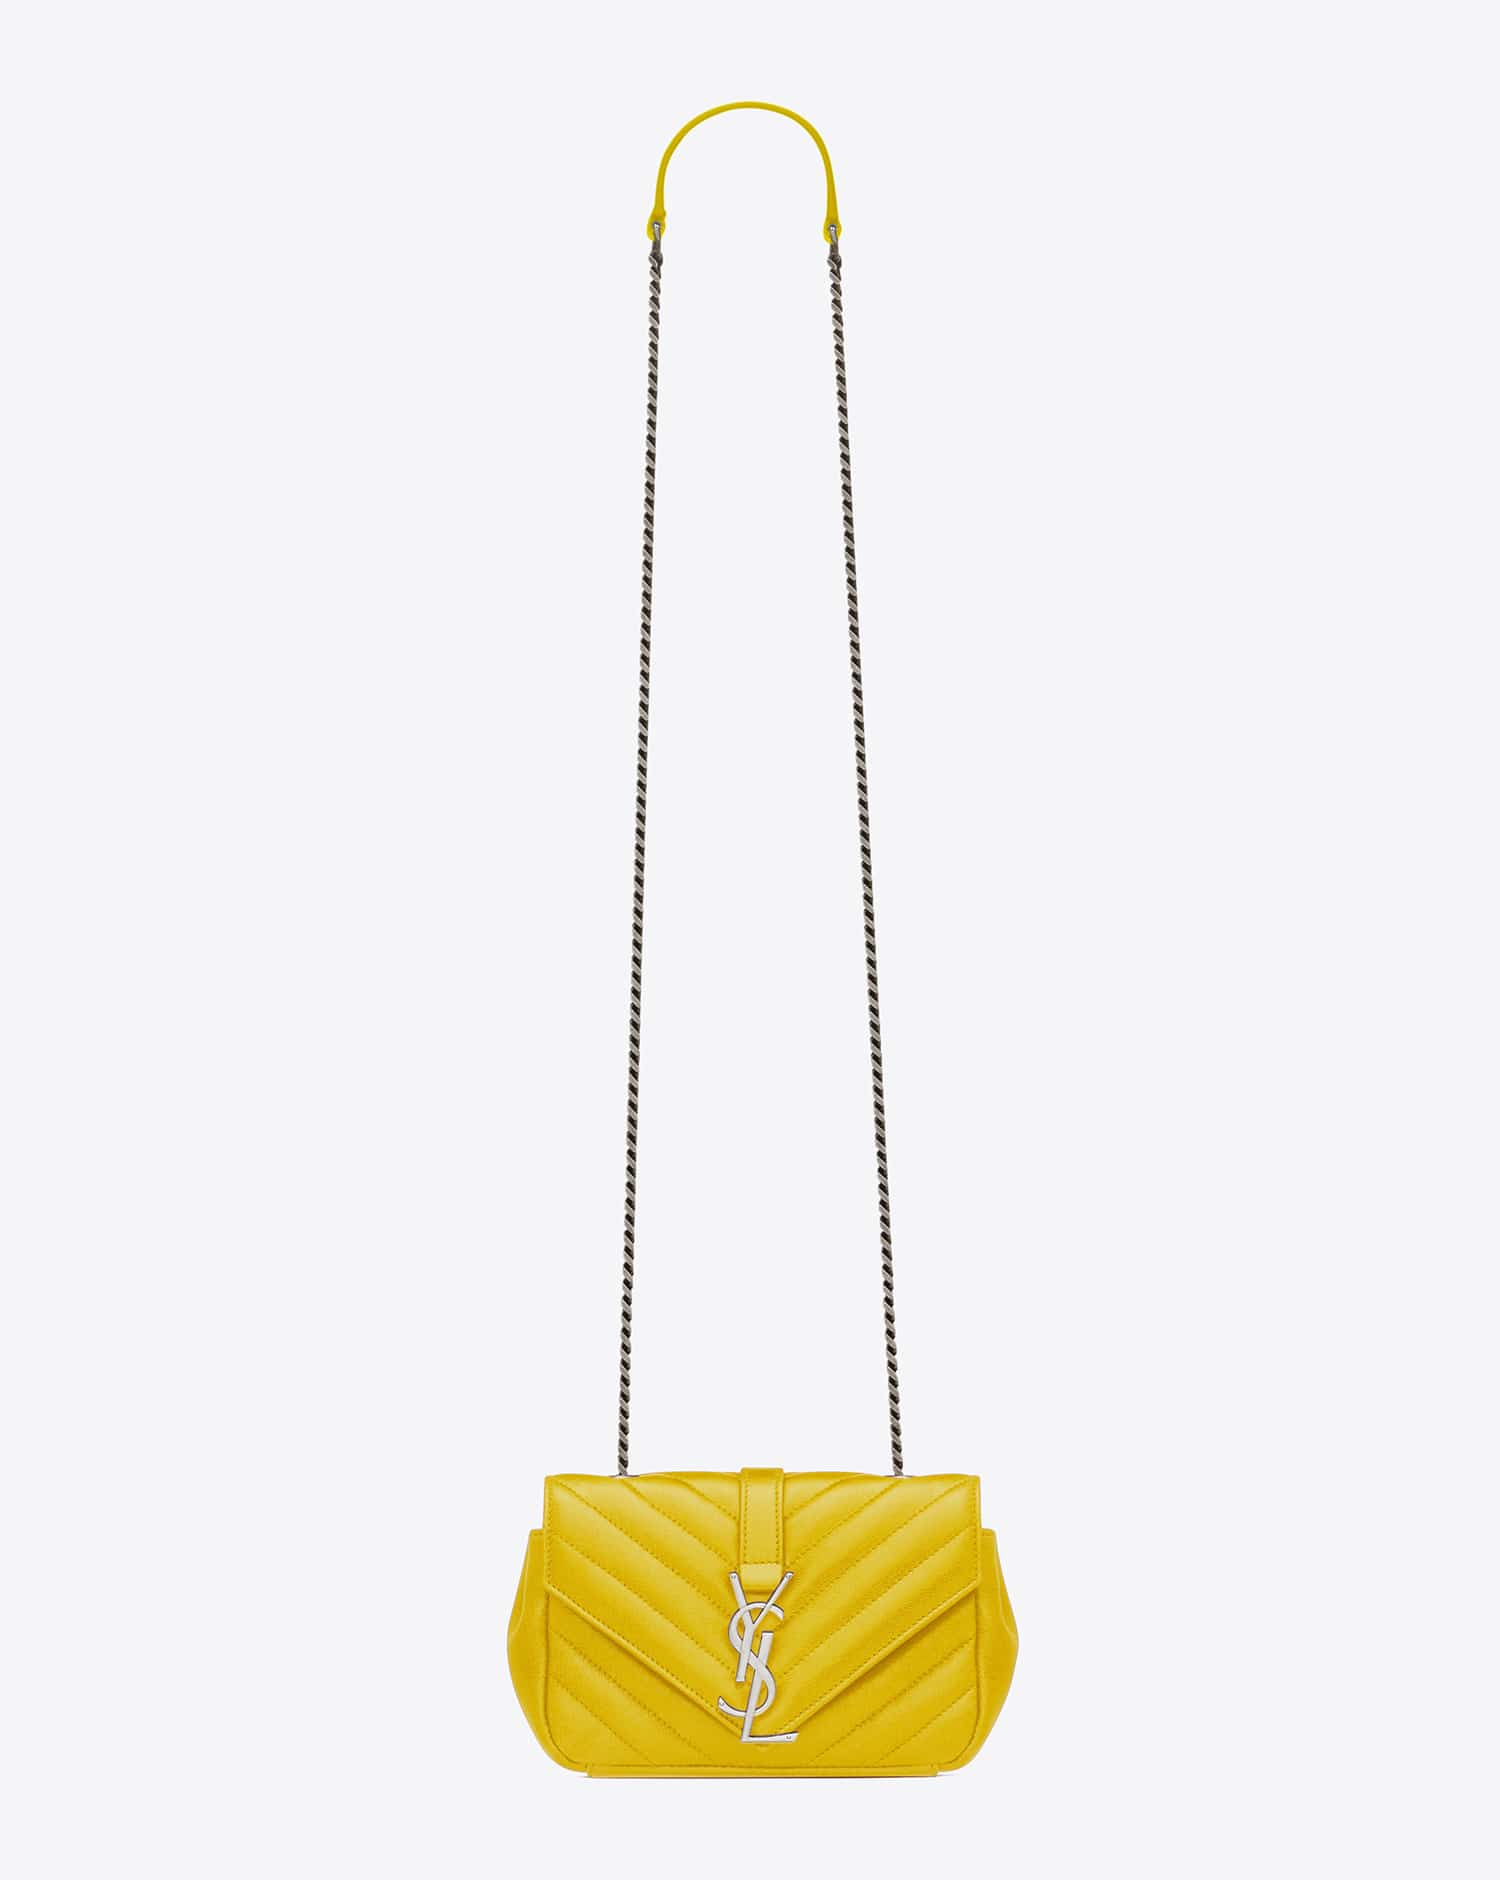 db5942a547a Saint Laurent Fall/Winter 2015 Bag Collection Featuring Punk Chain ...